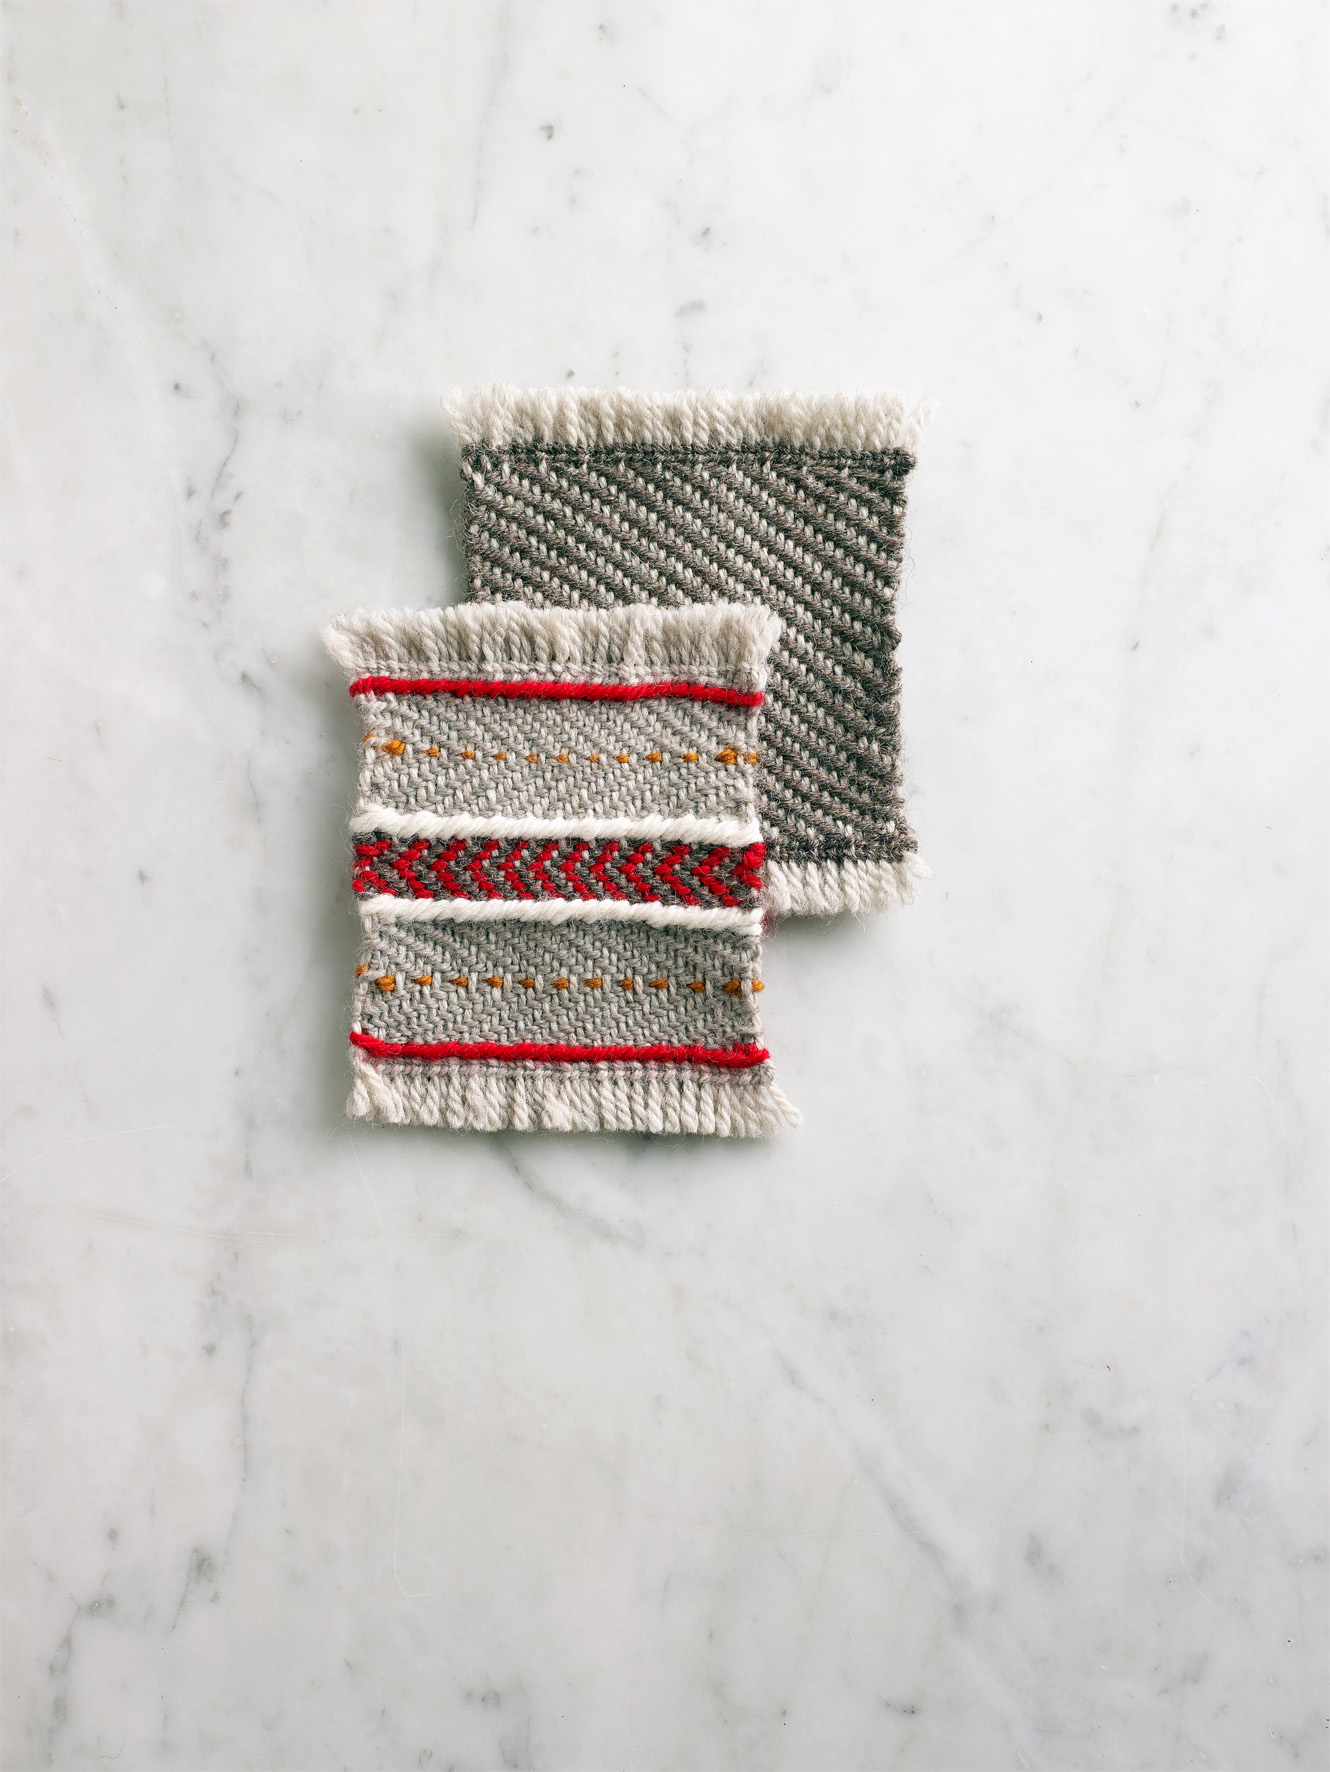 Shop — Fiona Daly Textiles —Little Loom Weaving by Fiona Daly